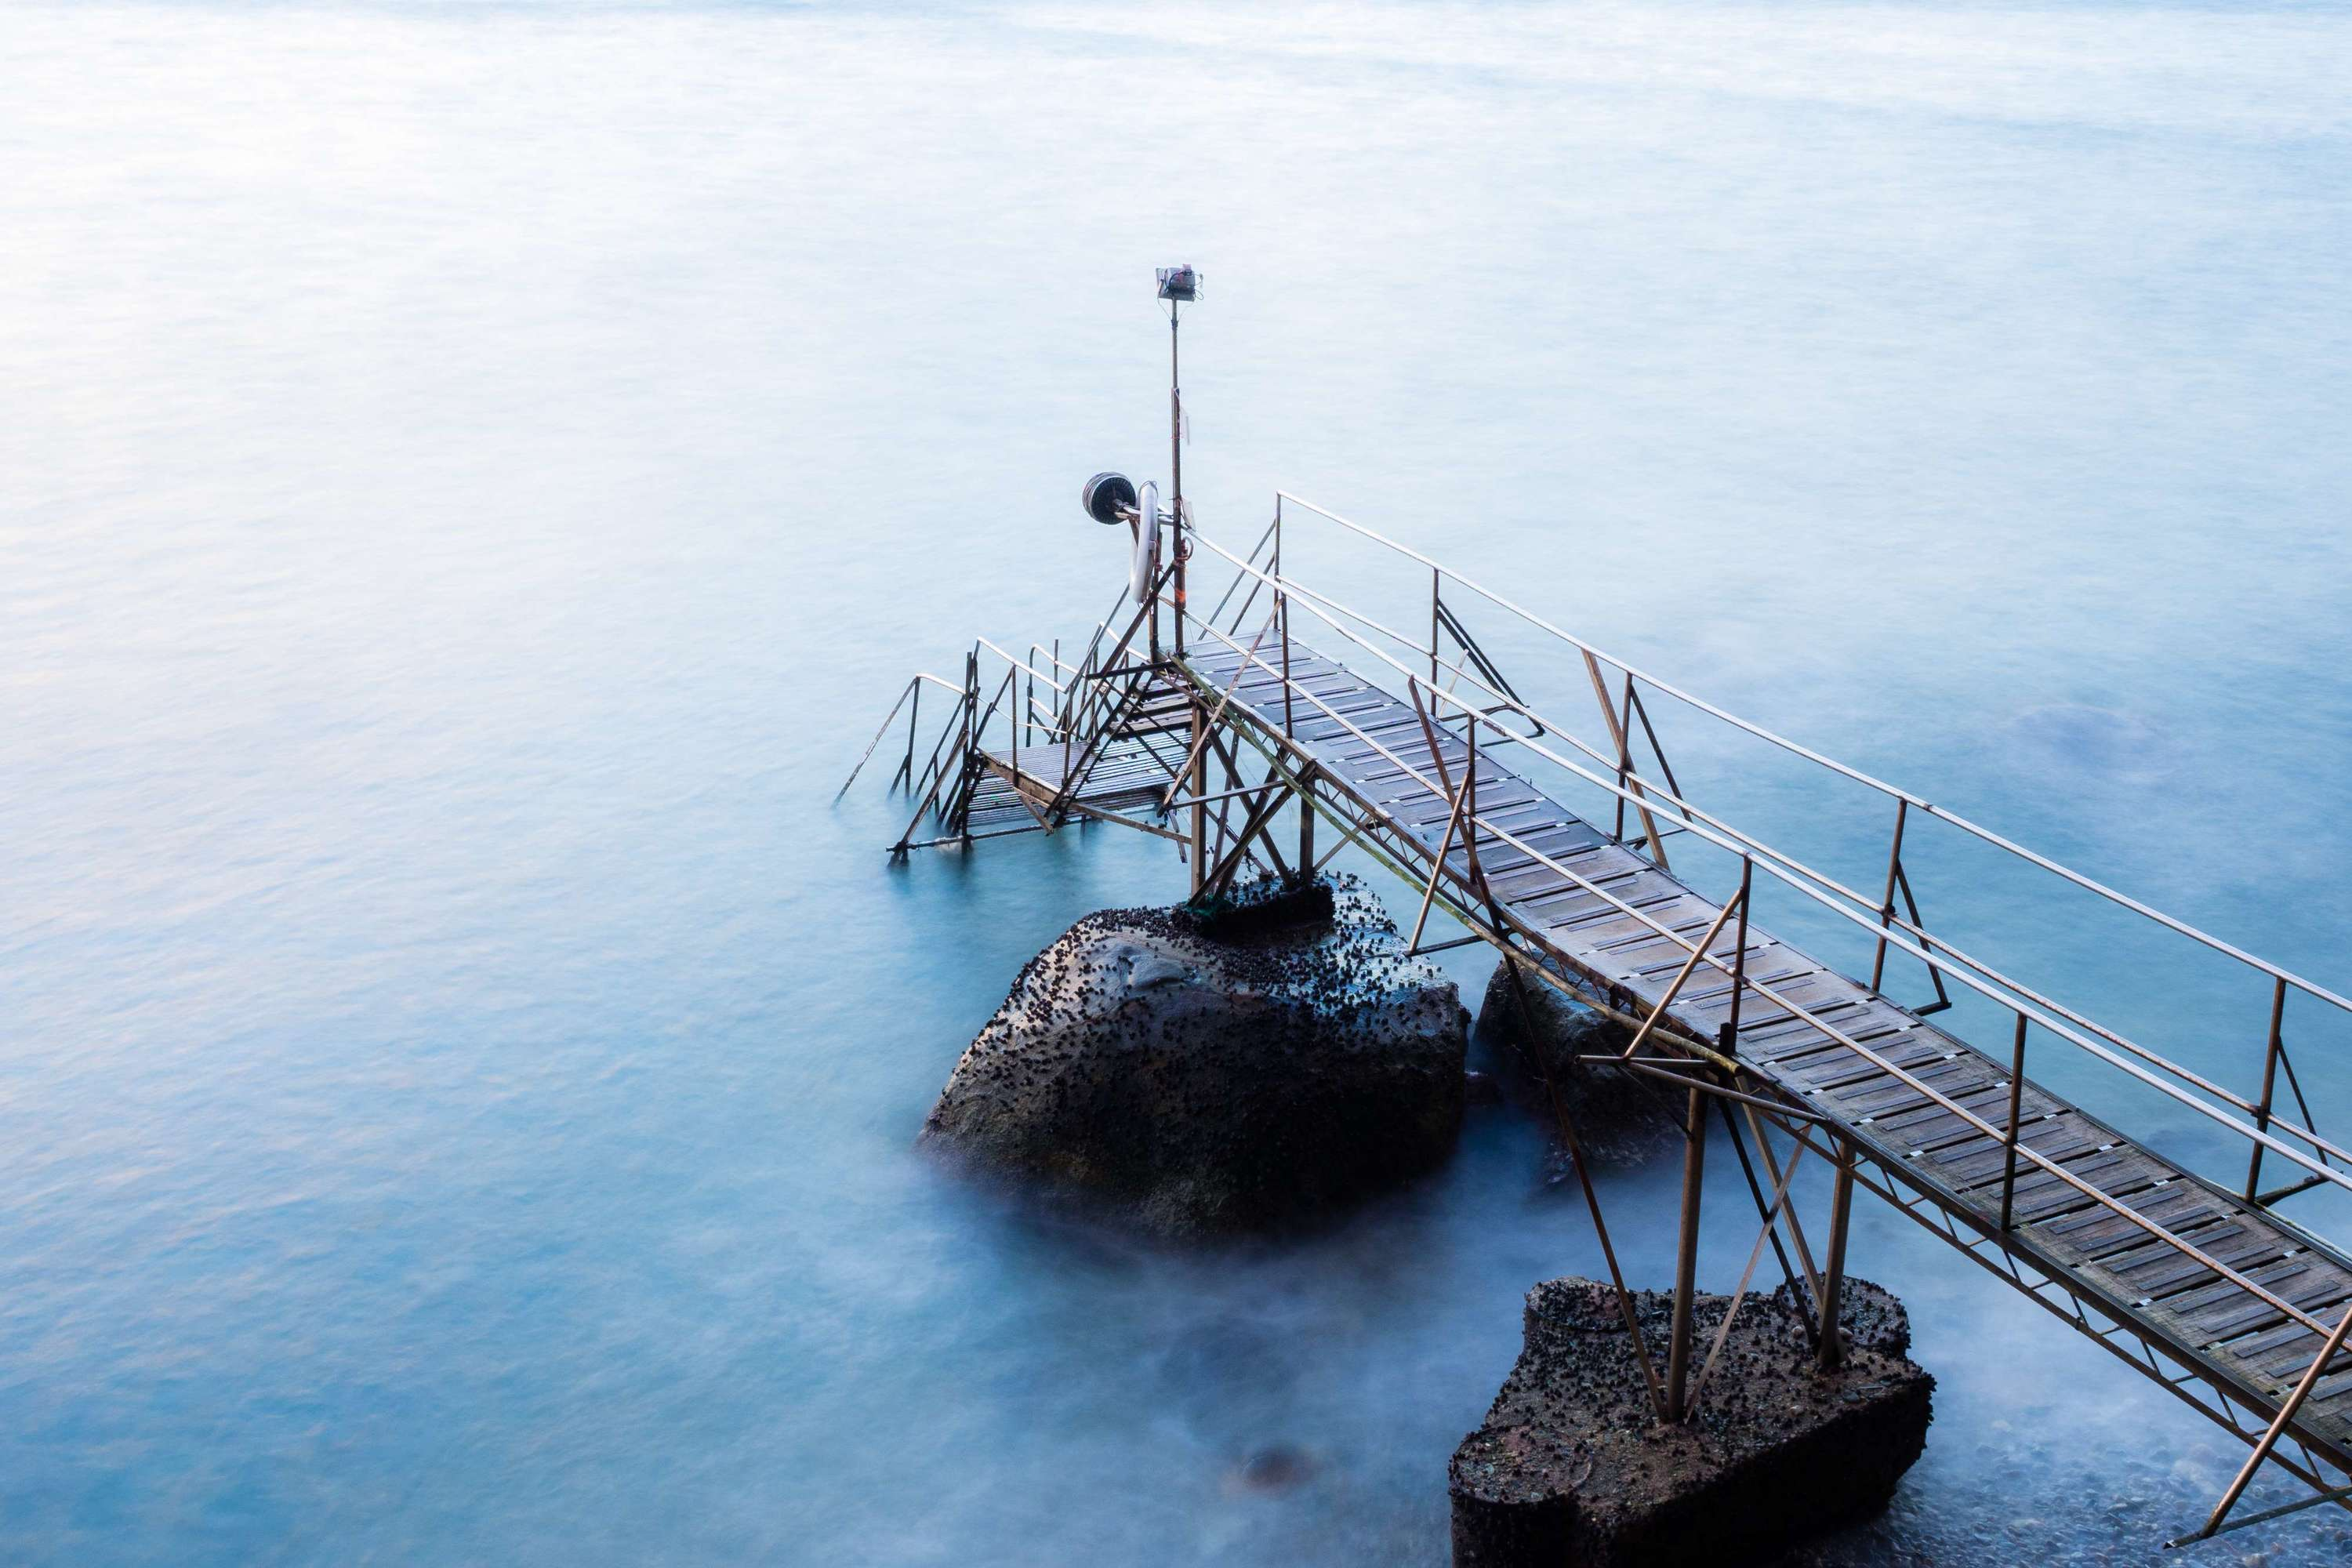 Sai Wan Swimming Shed-Shutterstock06-03-2020